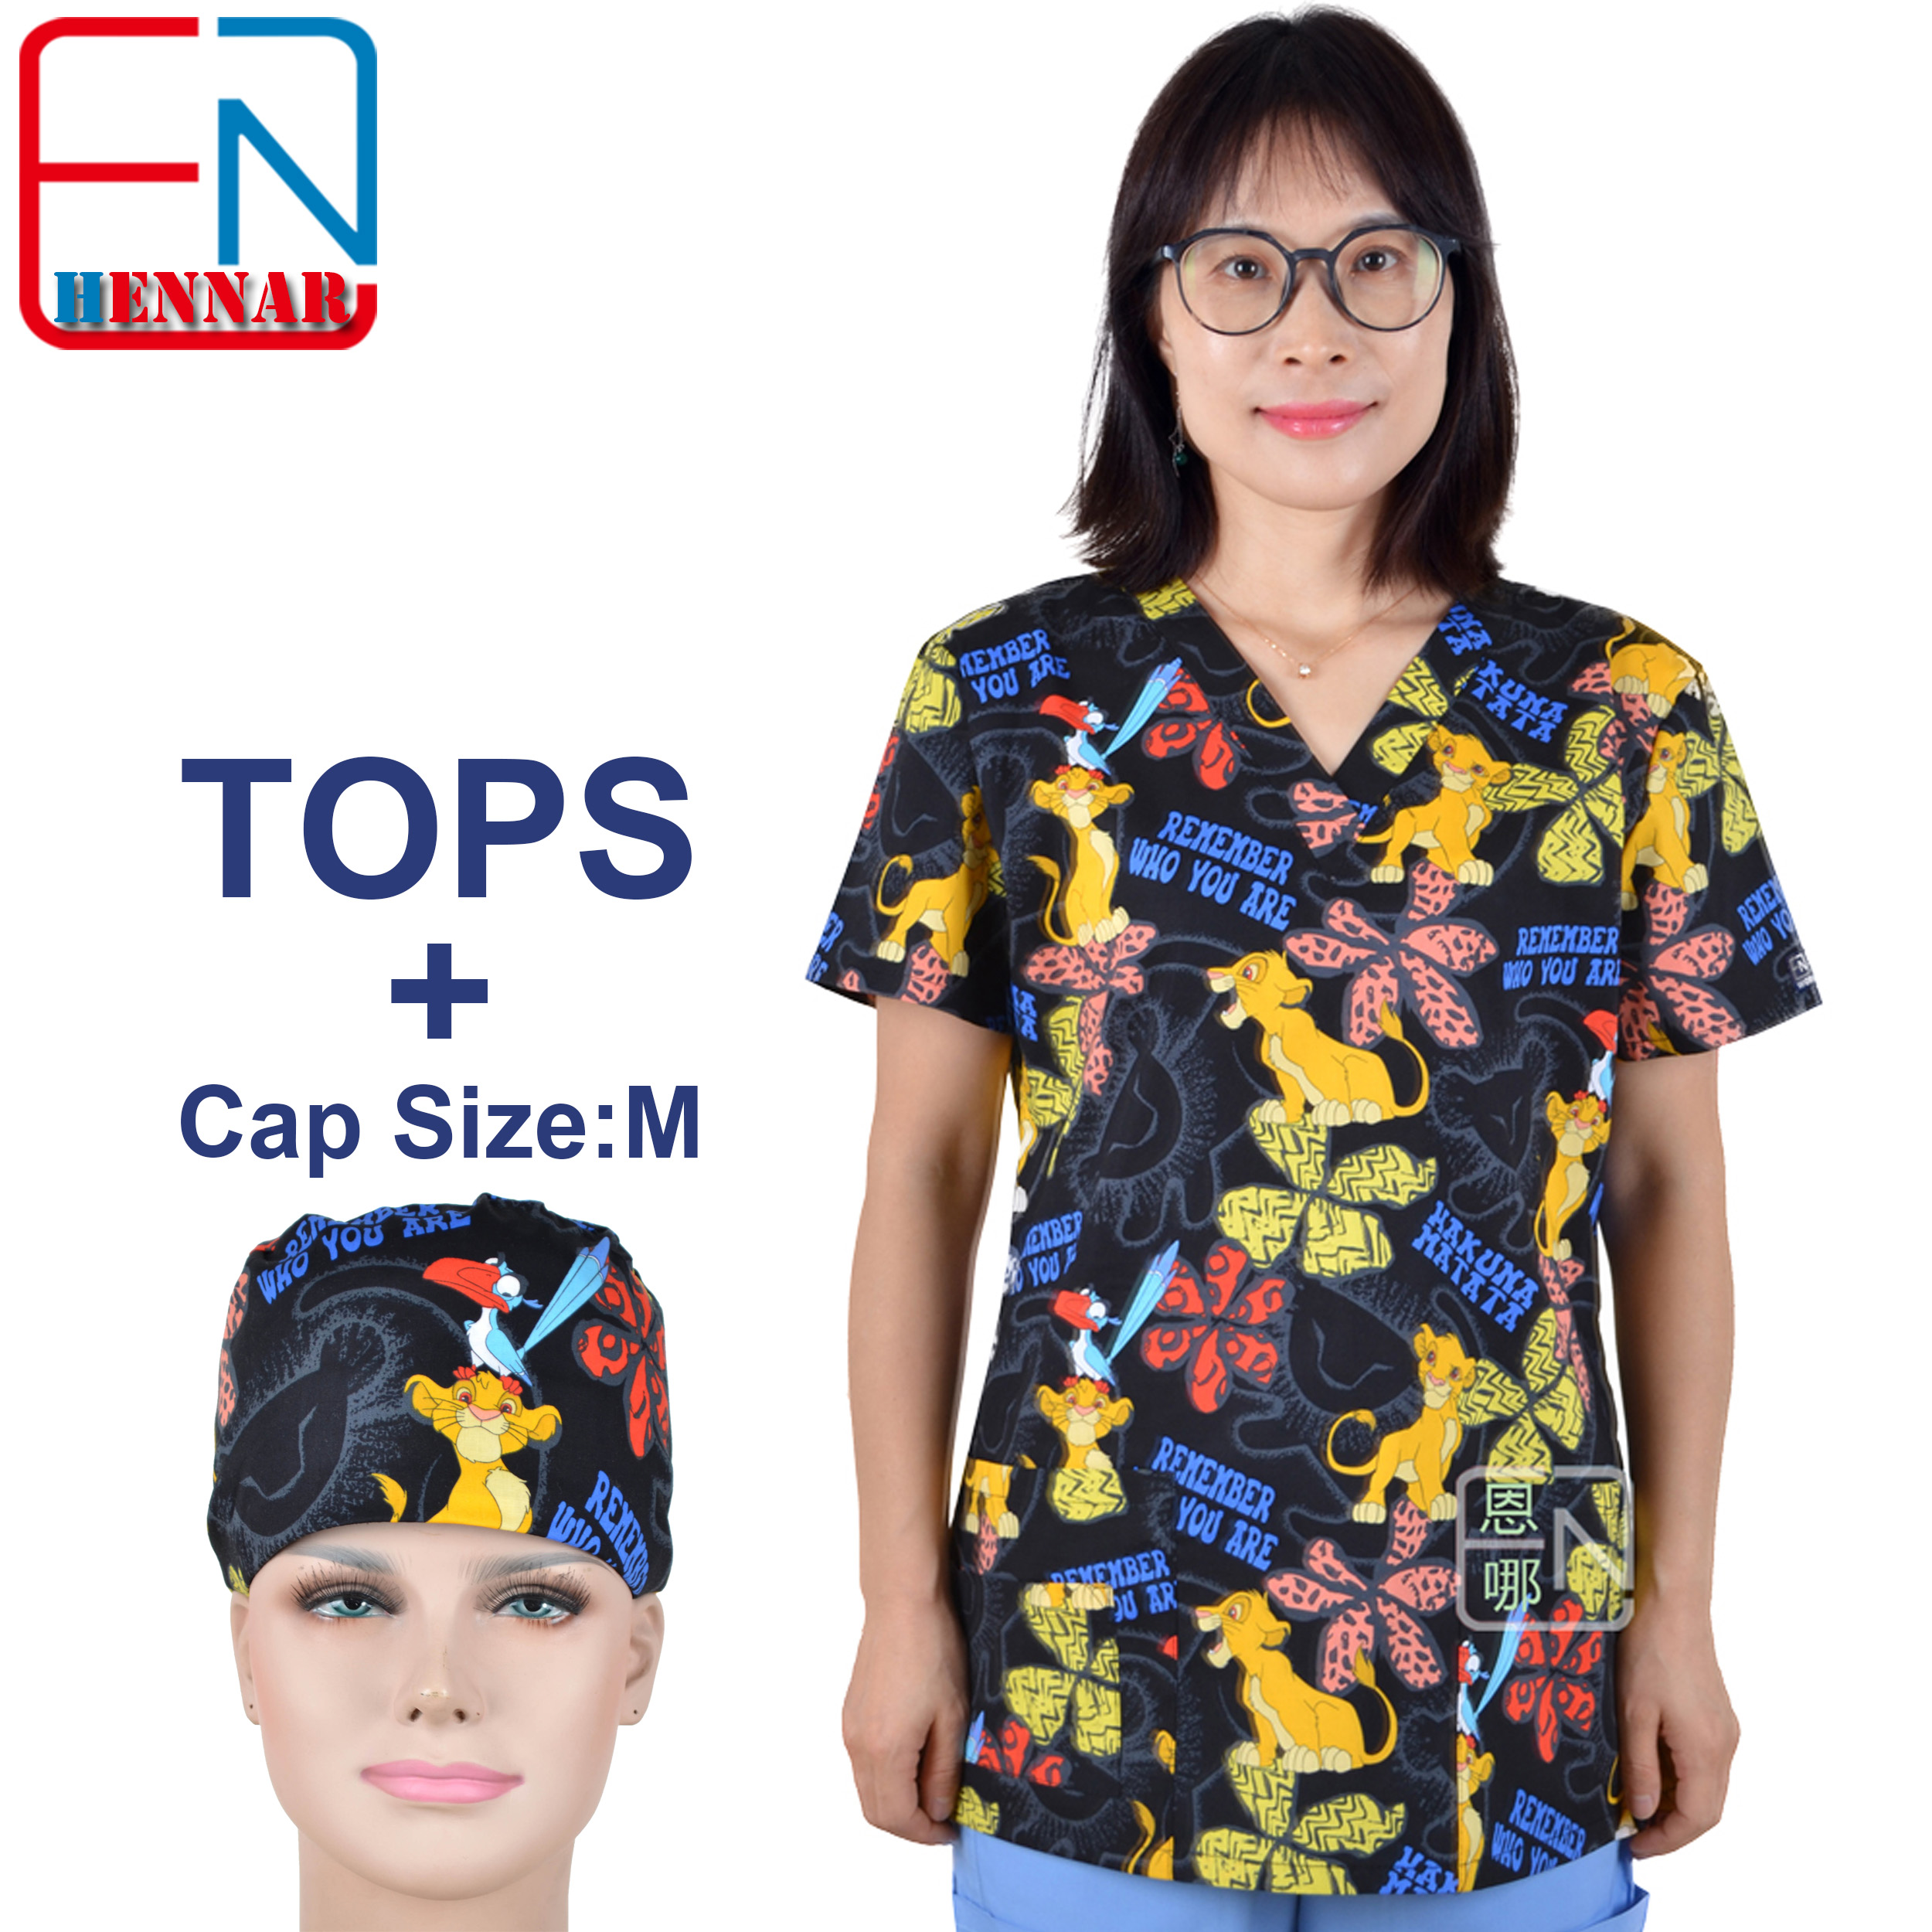 Hennar Medical Scrubs Nursing Scrubs Women Scrubs Nurse Medical Uniformes Medicos Para Mujer Scrub Tops+ Caps